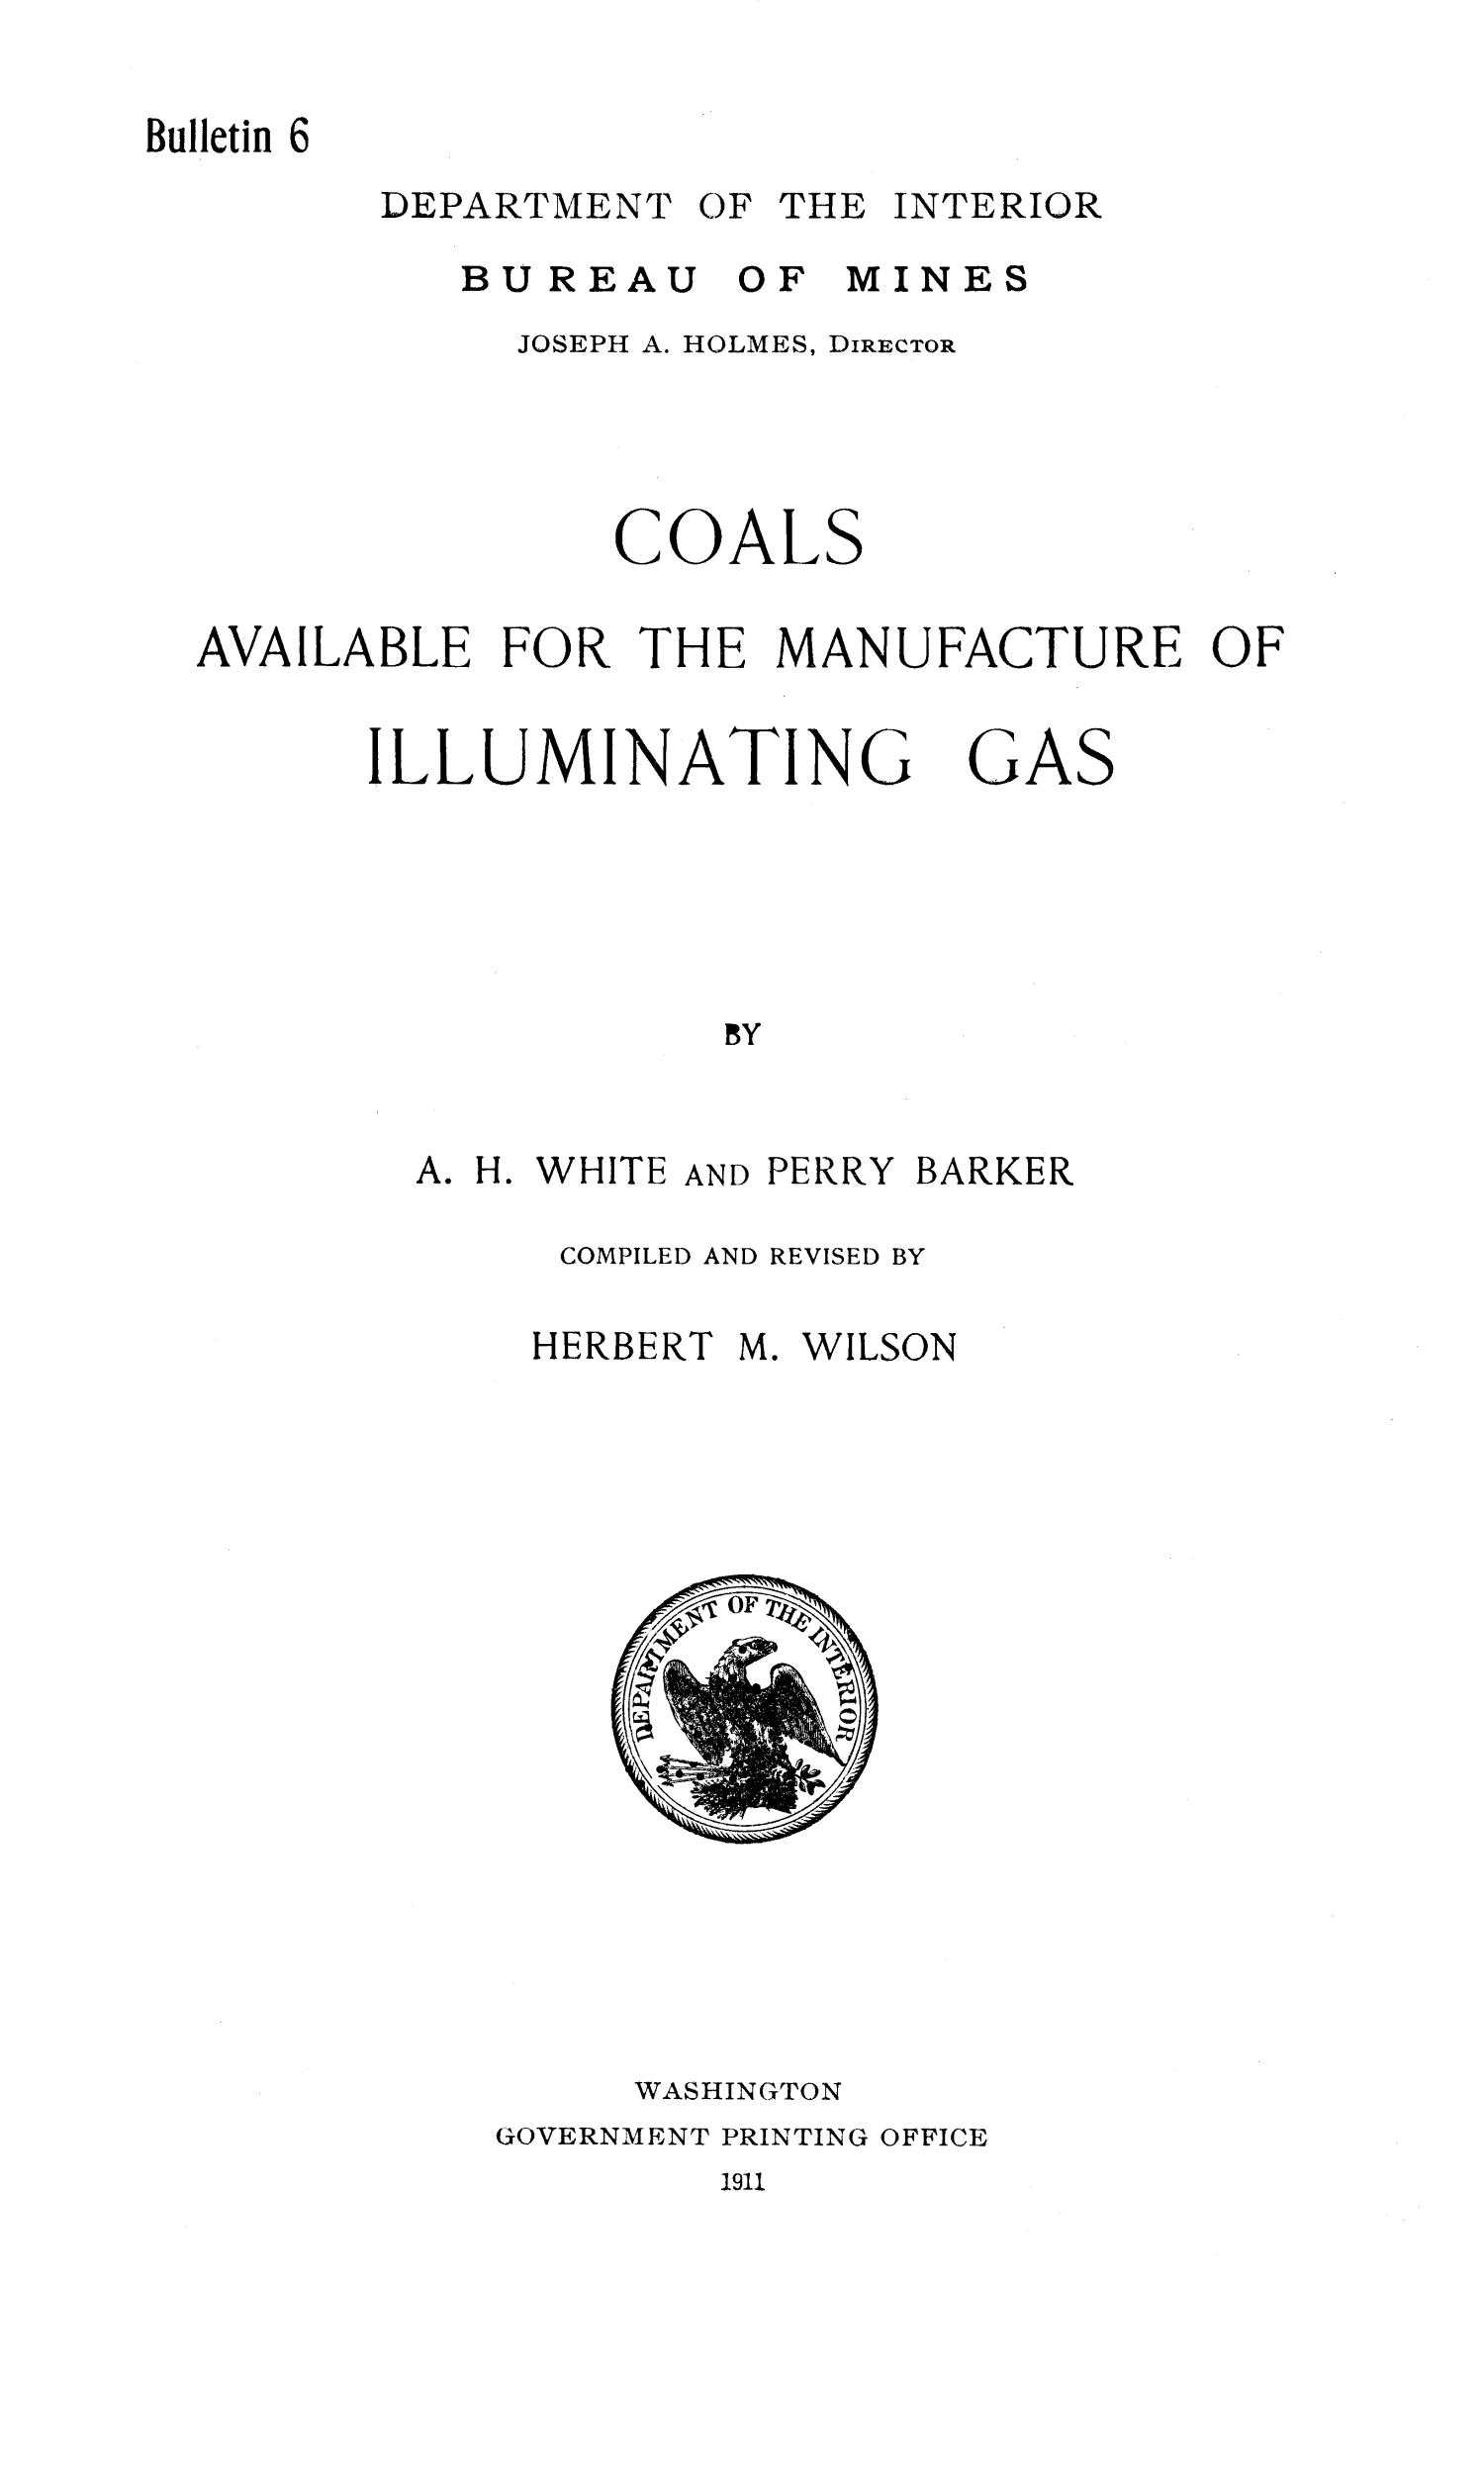 Coals Available for the Manufacture of Illuminating Gas                                                                                                      1